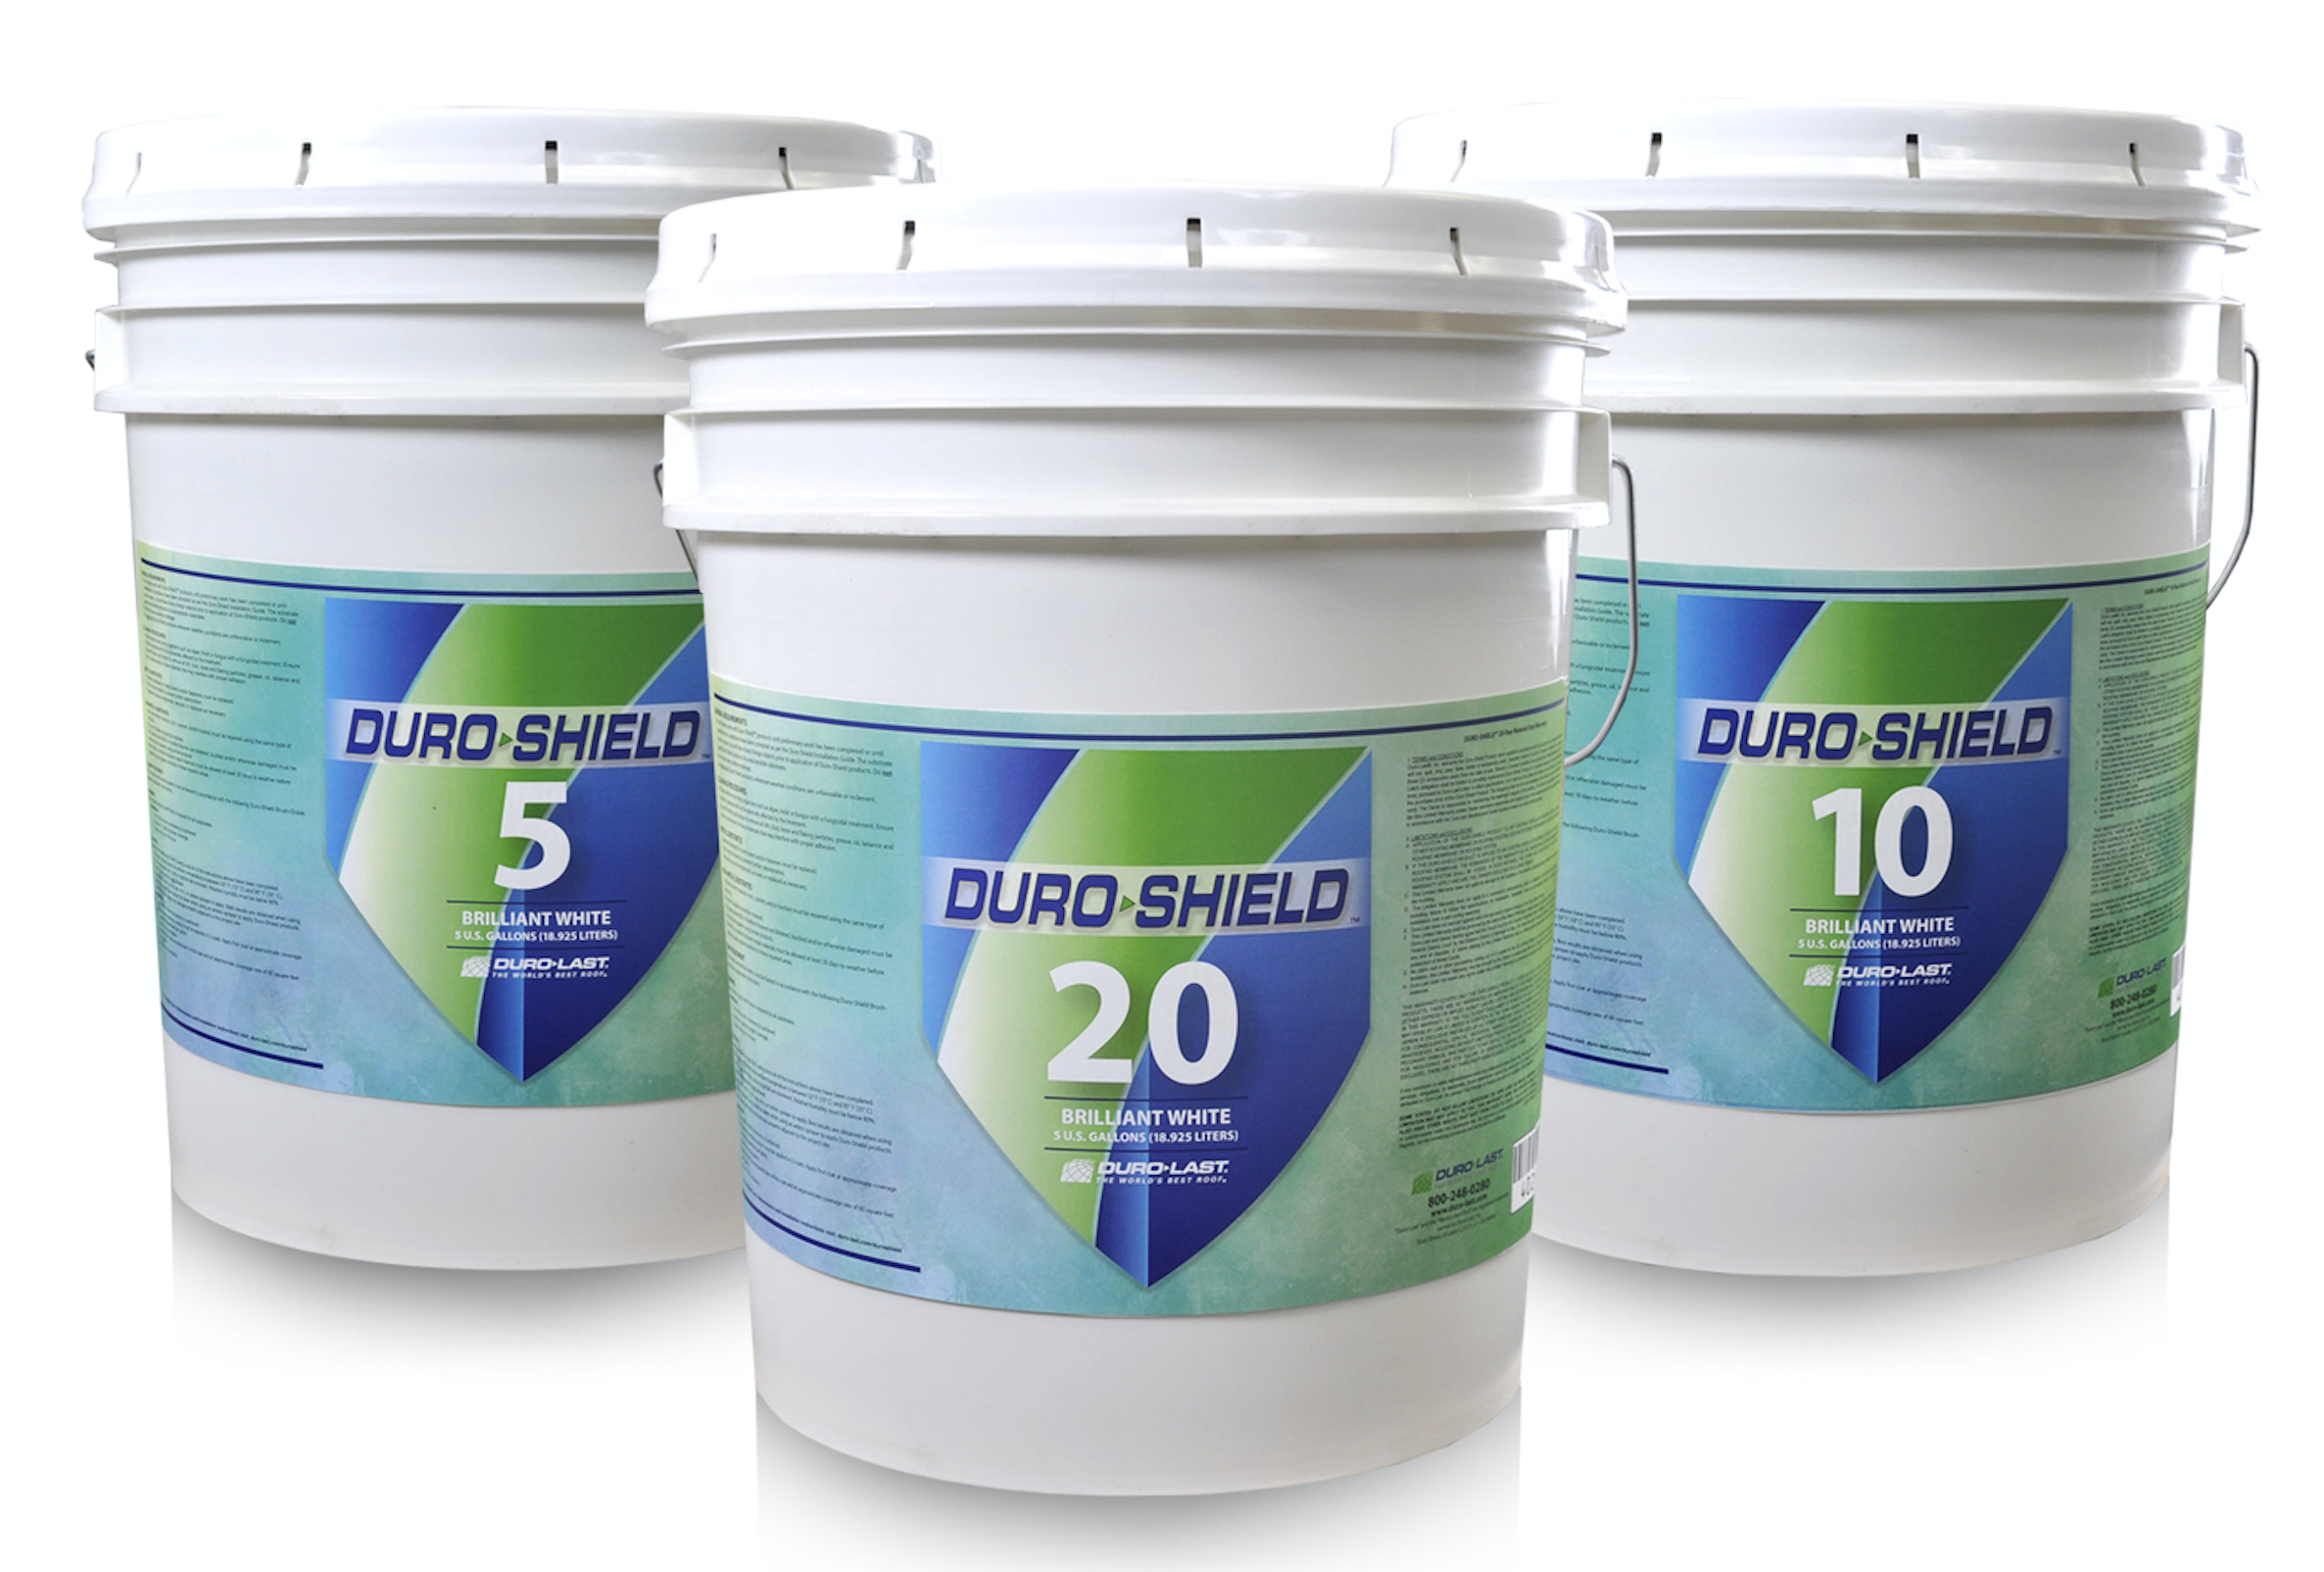 Duro-Last introduces its line of Duro-Shield Coatings and Materials